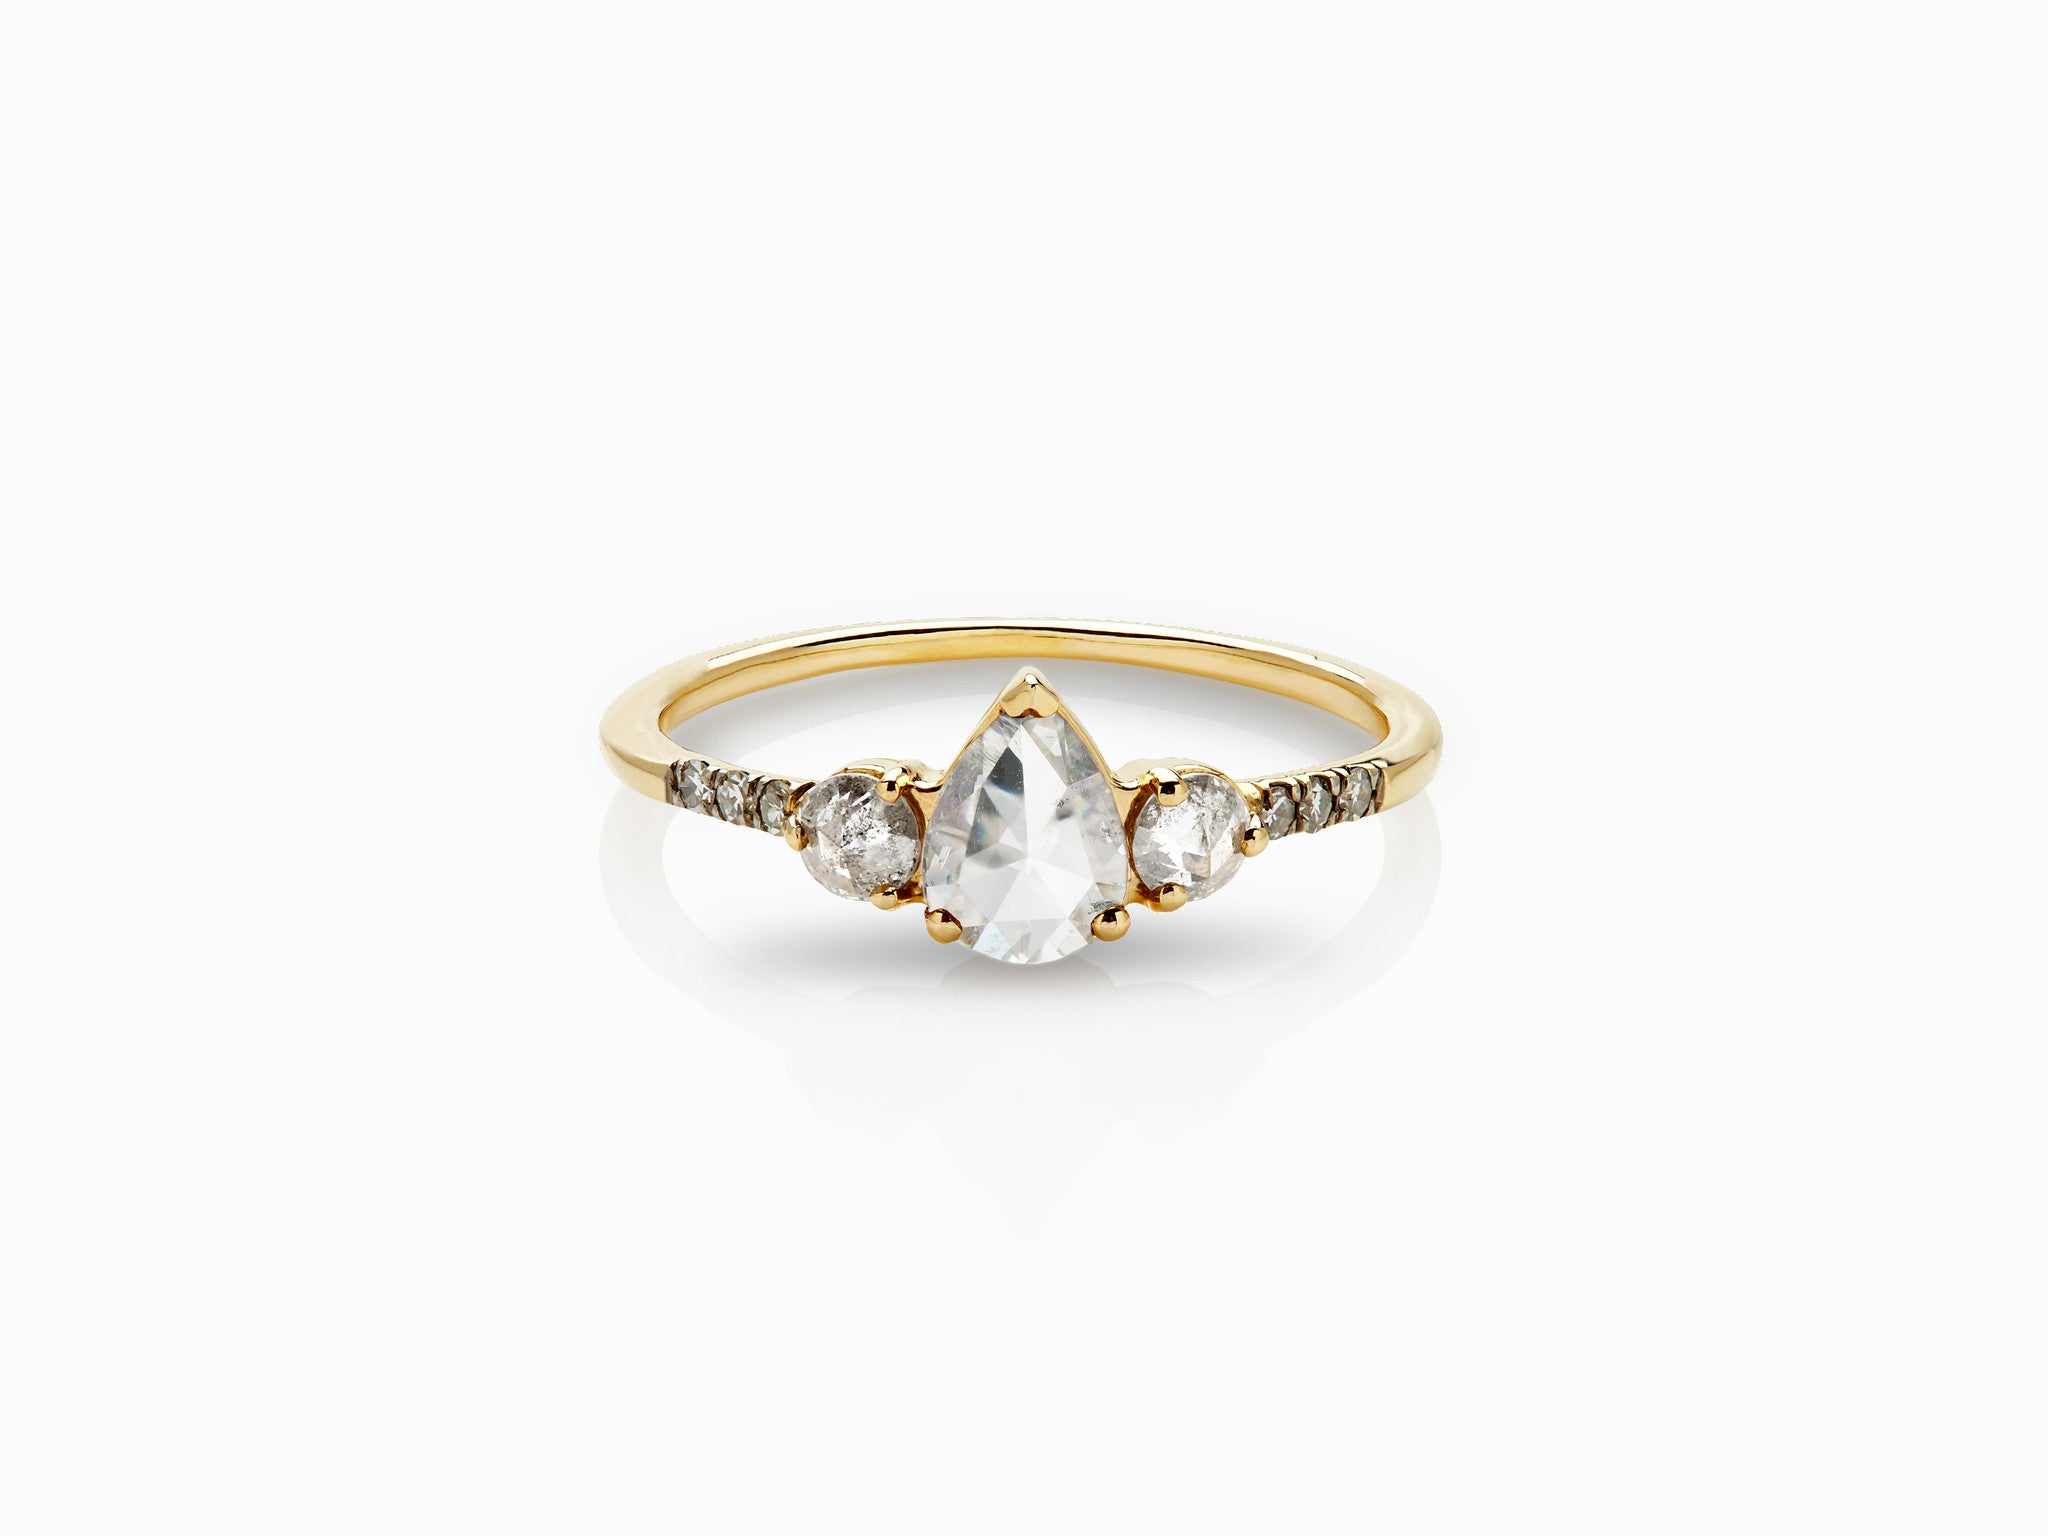 Radiance Ring - In Stock Now